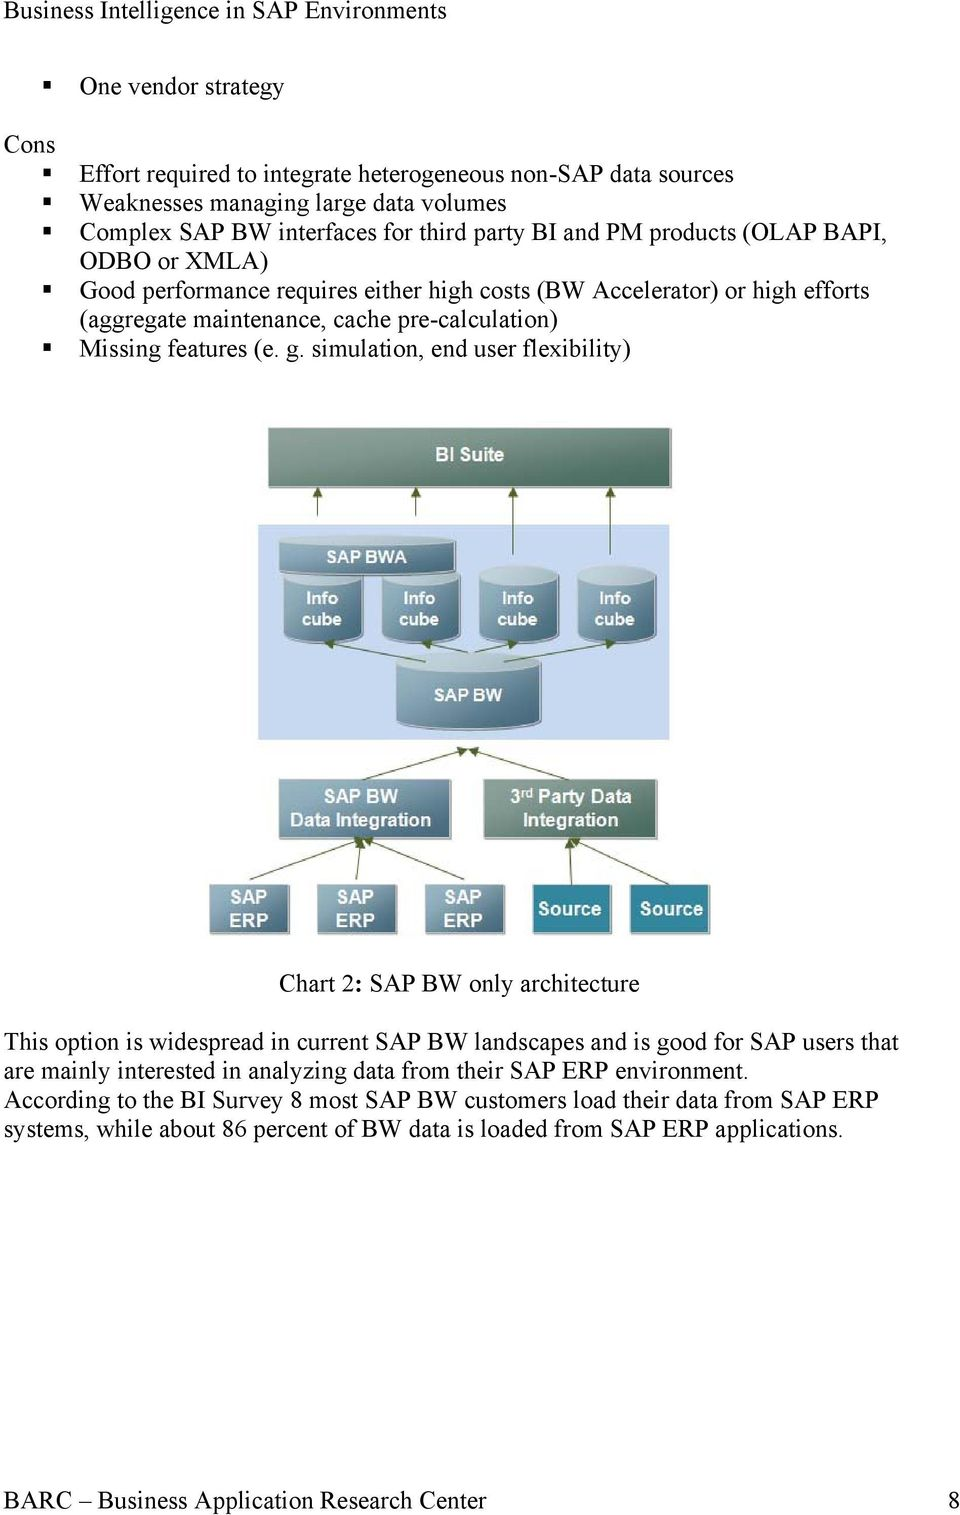 simulation, end user flexibility) Chart 2: SAP BW only architecture This option is widespread in current SAP BW landscapes and is good for SAP users that are mainly interested in analyzing data